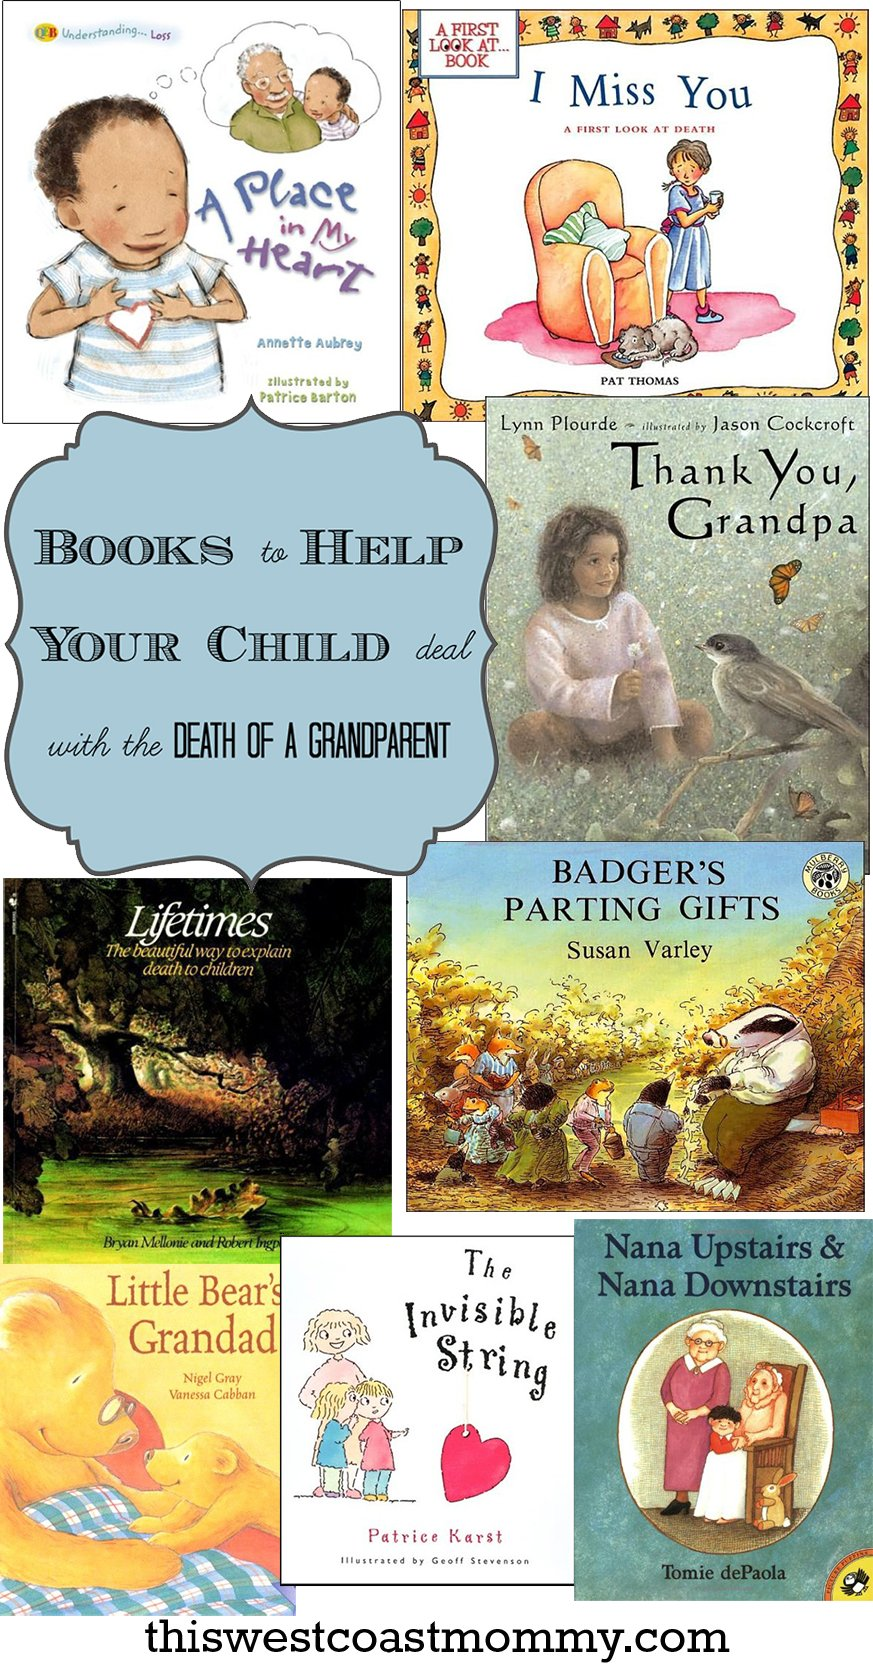 Books to help your child deal with the death of a grandparent